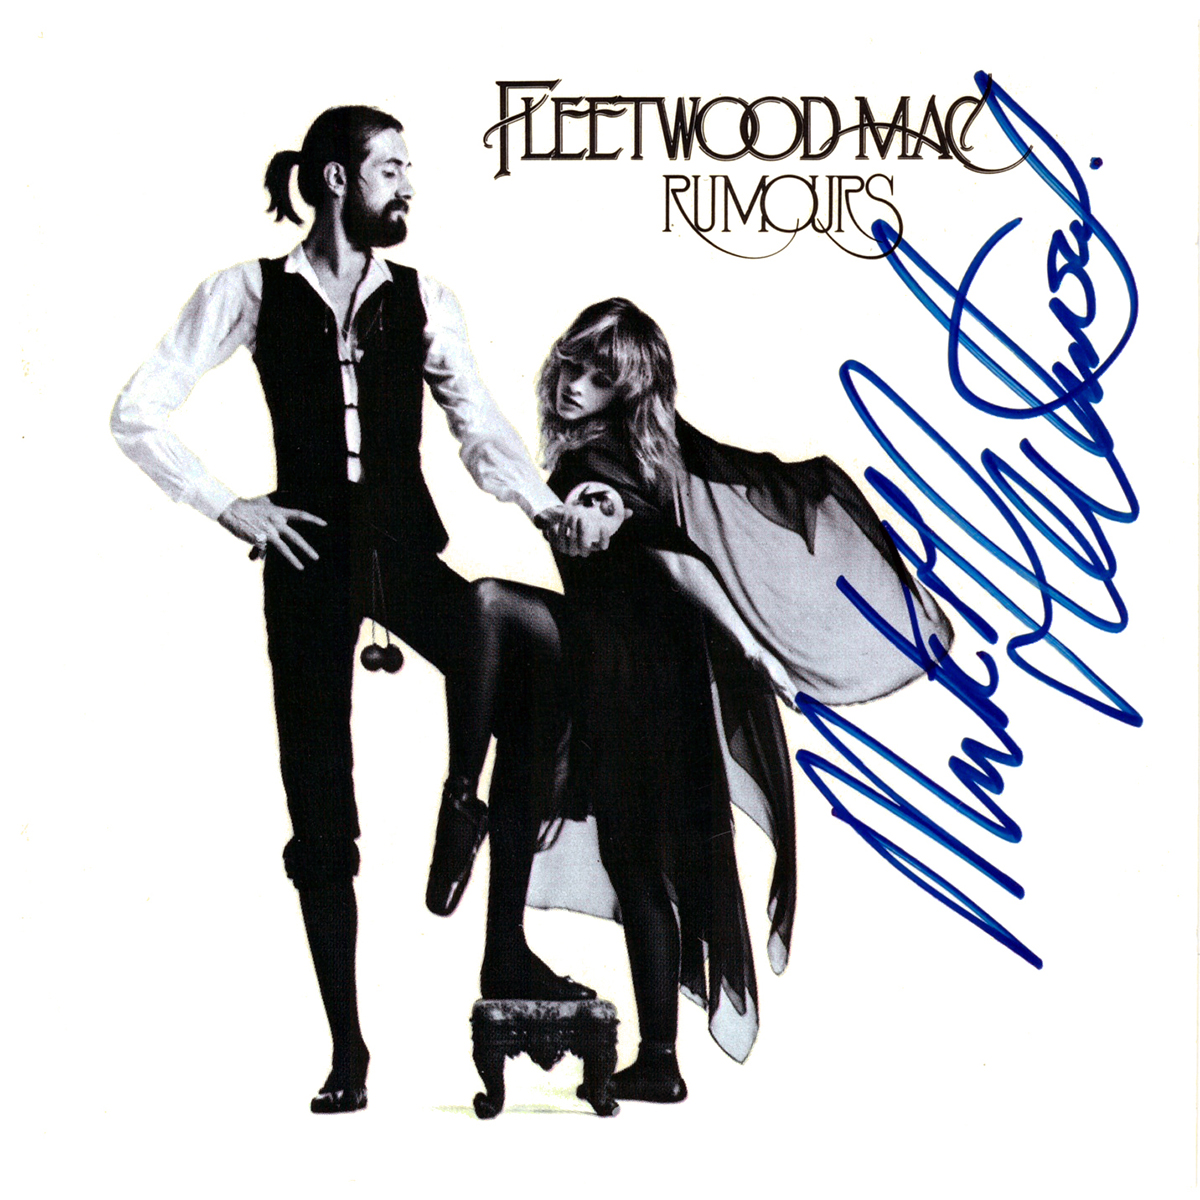 CD Cover - Fleetwood Mac - Rumors #2